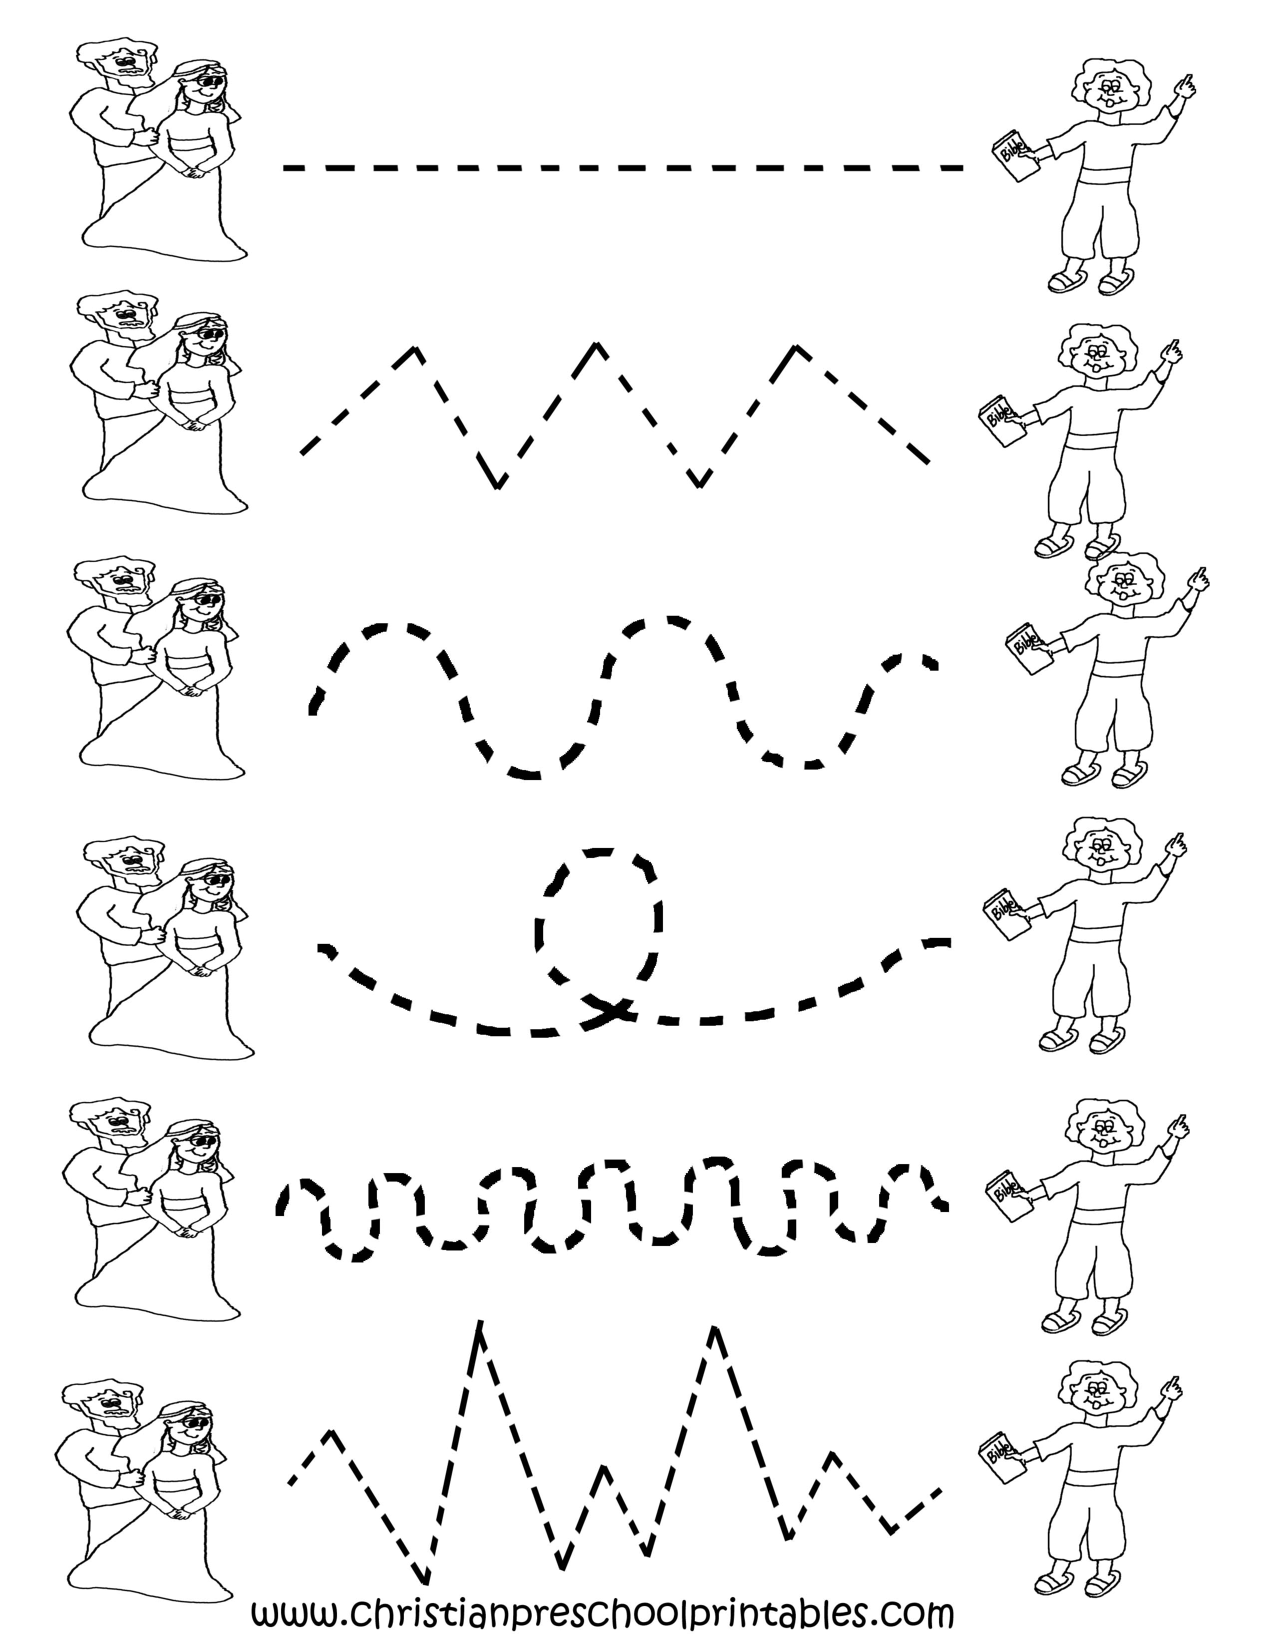 Worksheet Tracing Worksheets Printable 1000 images about worksheets on pinterest fine motor preschool and printable numbers